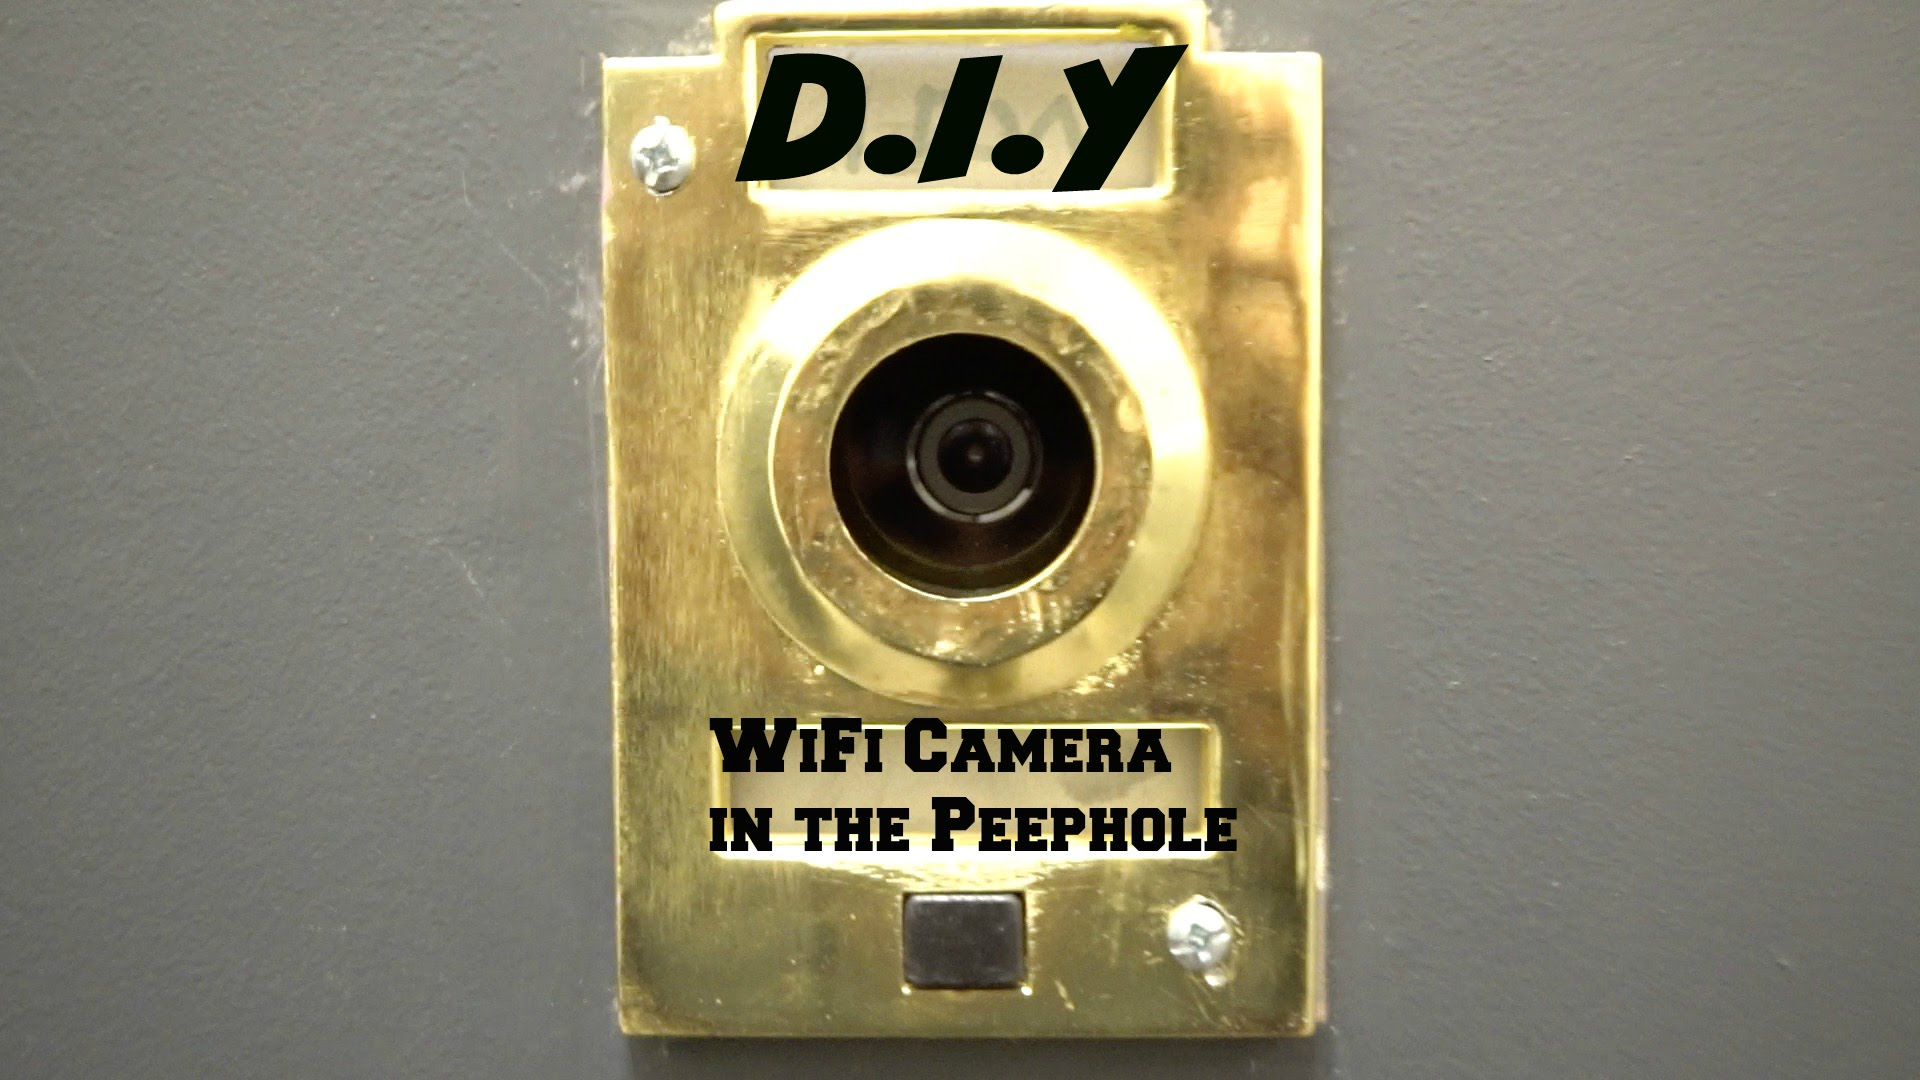 WiFi-Camera-in-the-Peephole-DIY-ft.-FLIR-FX